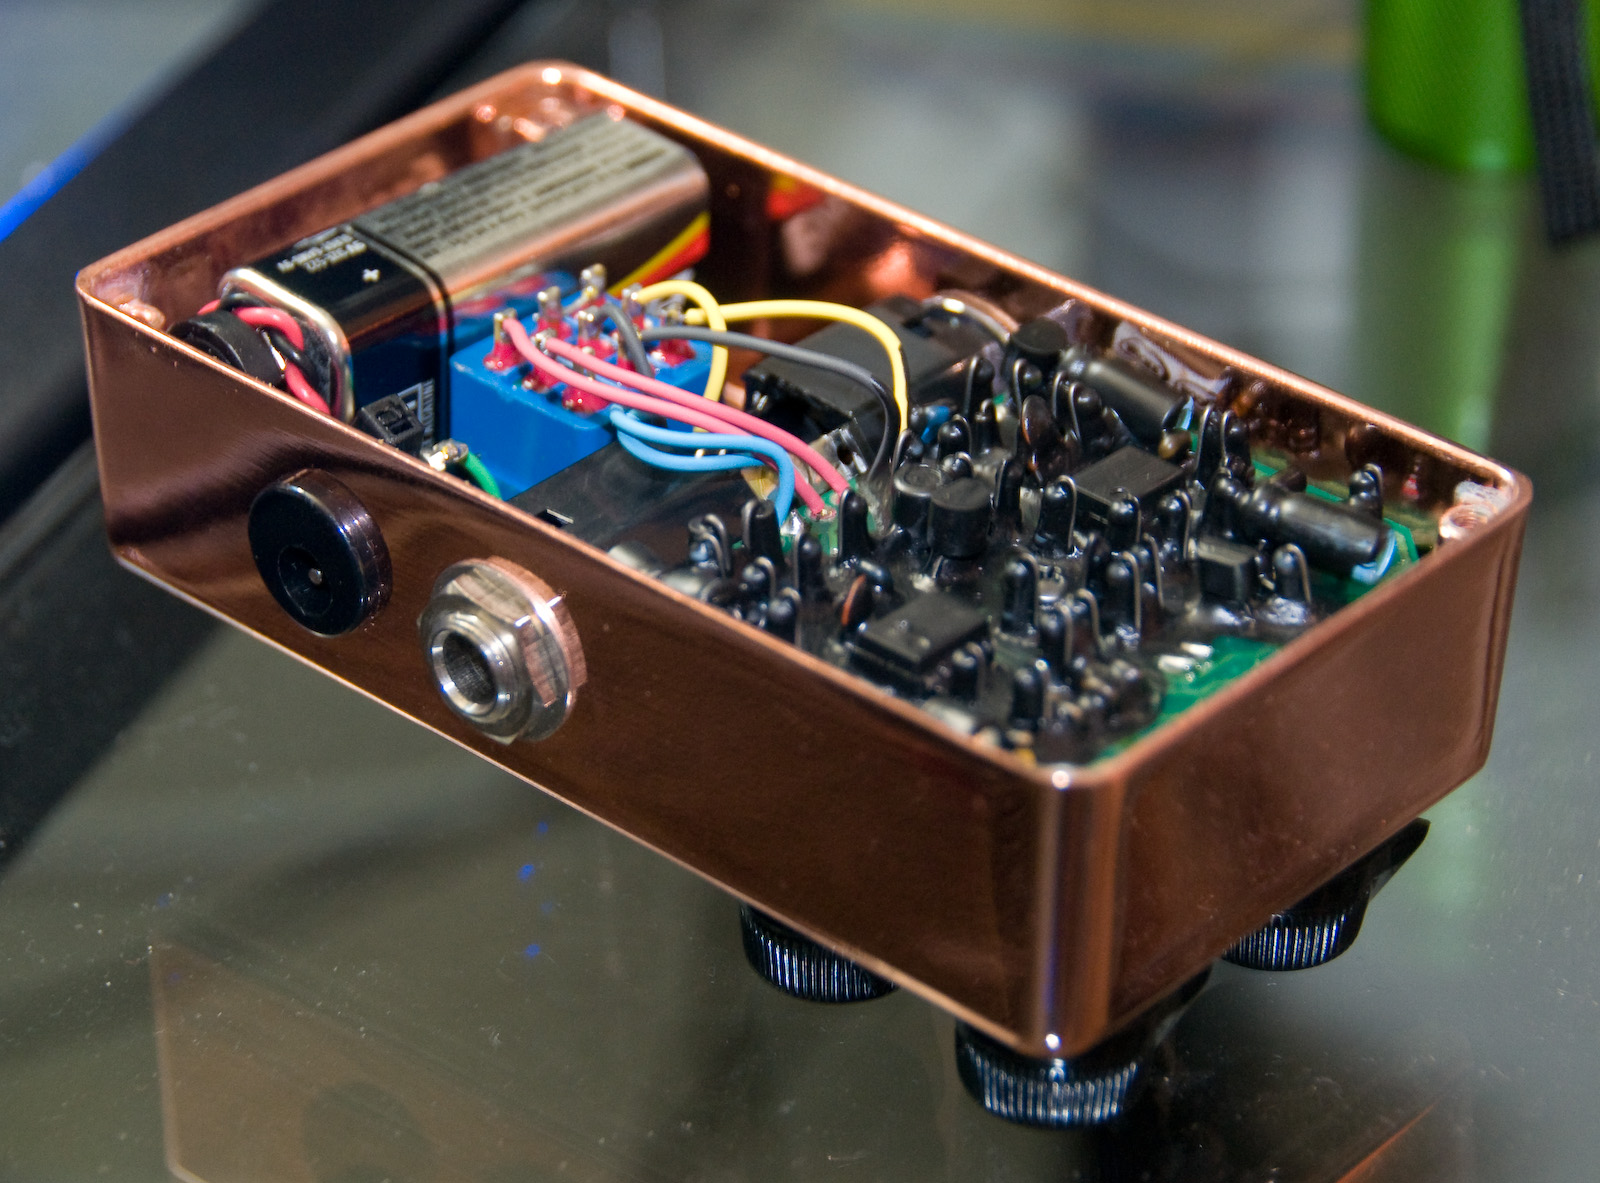 File:Xotic BB Preamp (Copper) - Internal.jpg - Wikimedia Commons on